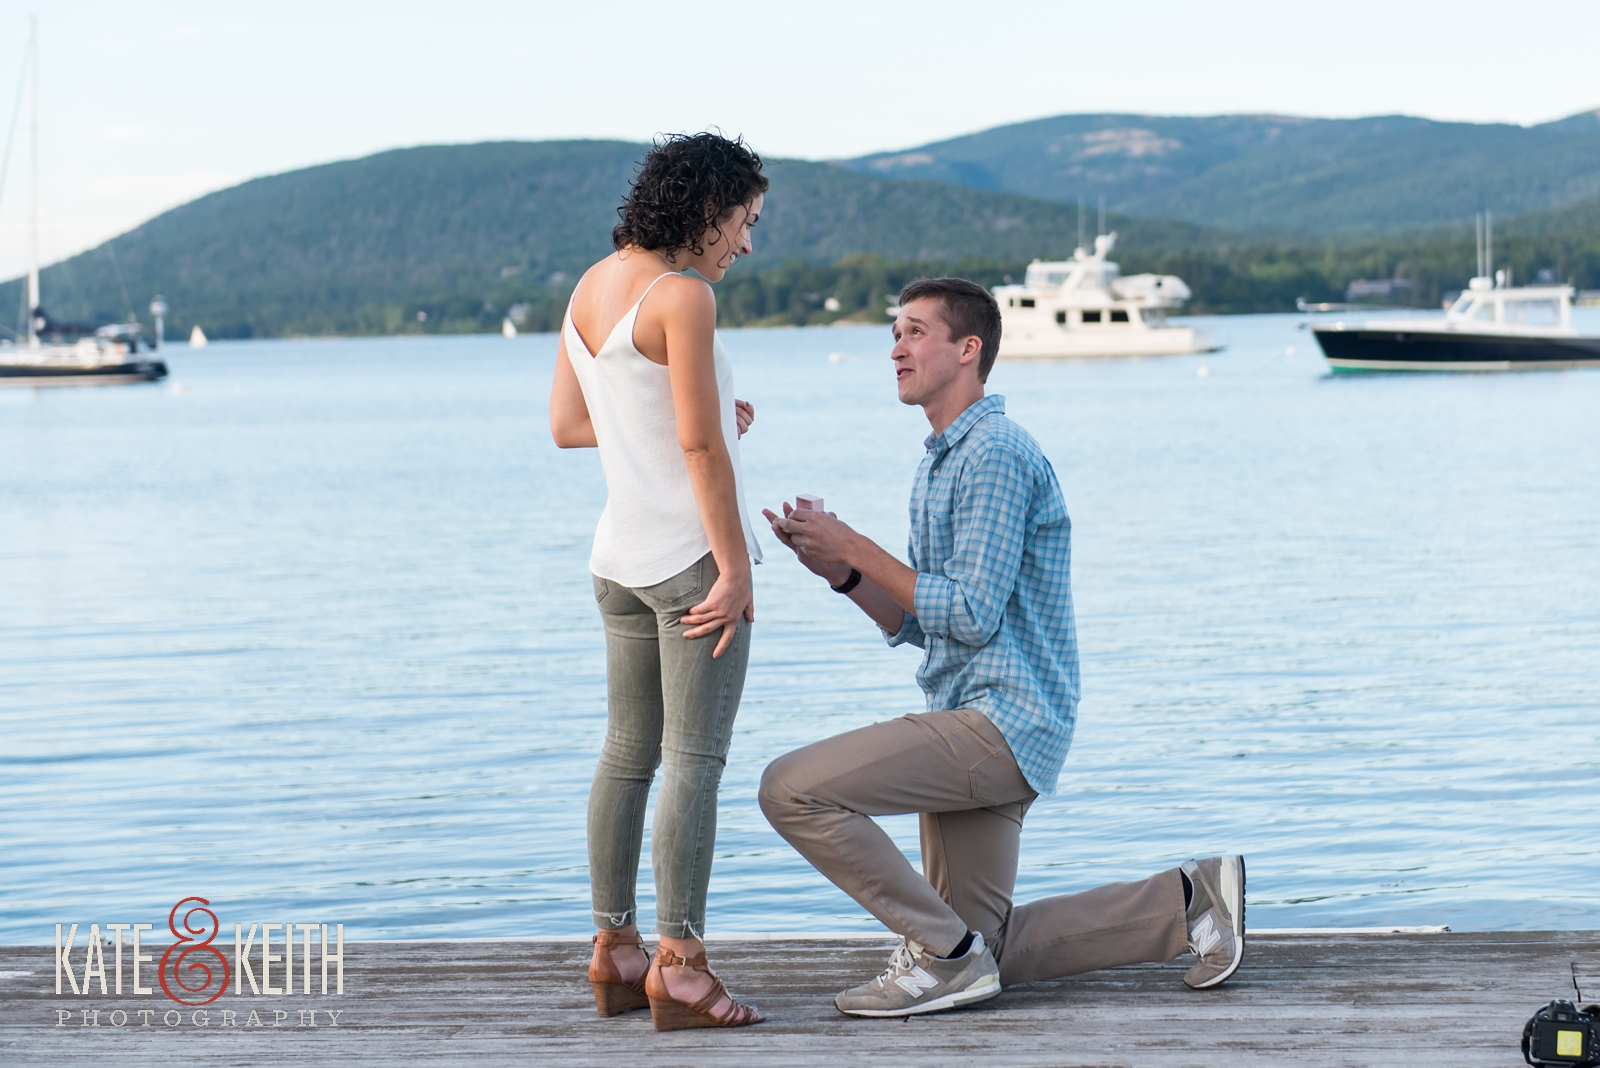 Surprise proposal, proposal in Acadia National Park, Southwest Harbor, Mount Desert Island, seaside, sunset proposal, engagement, getting engaged in Acadia National Park, rowboat, coastal Maine, New England, sailboats, dock, waterfront engagement